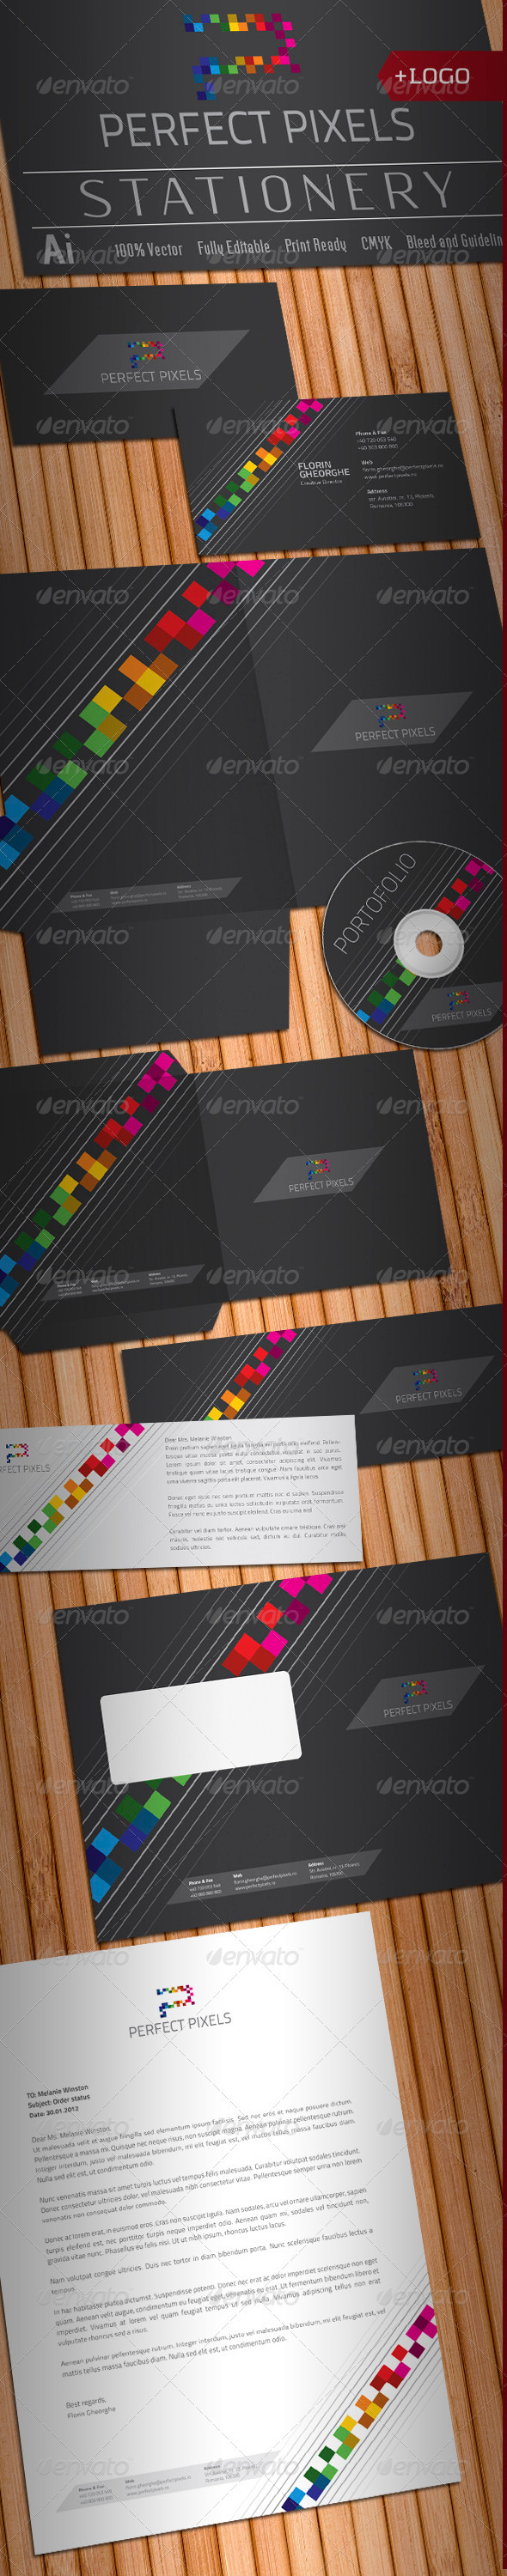 Perfect Pixels Stationery - Stationery Print Templates